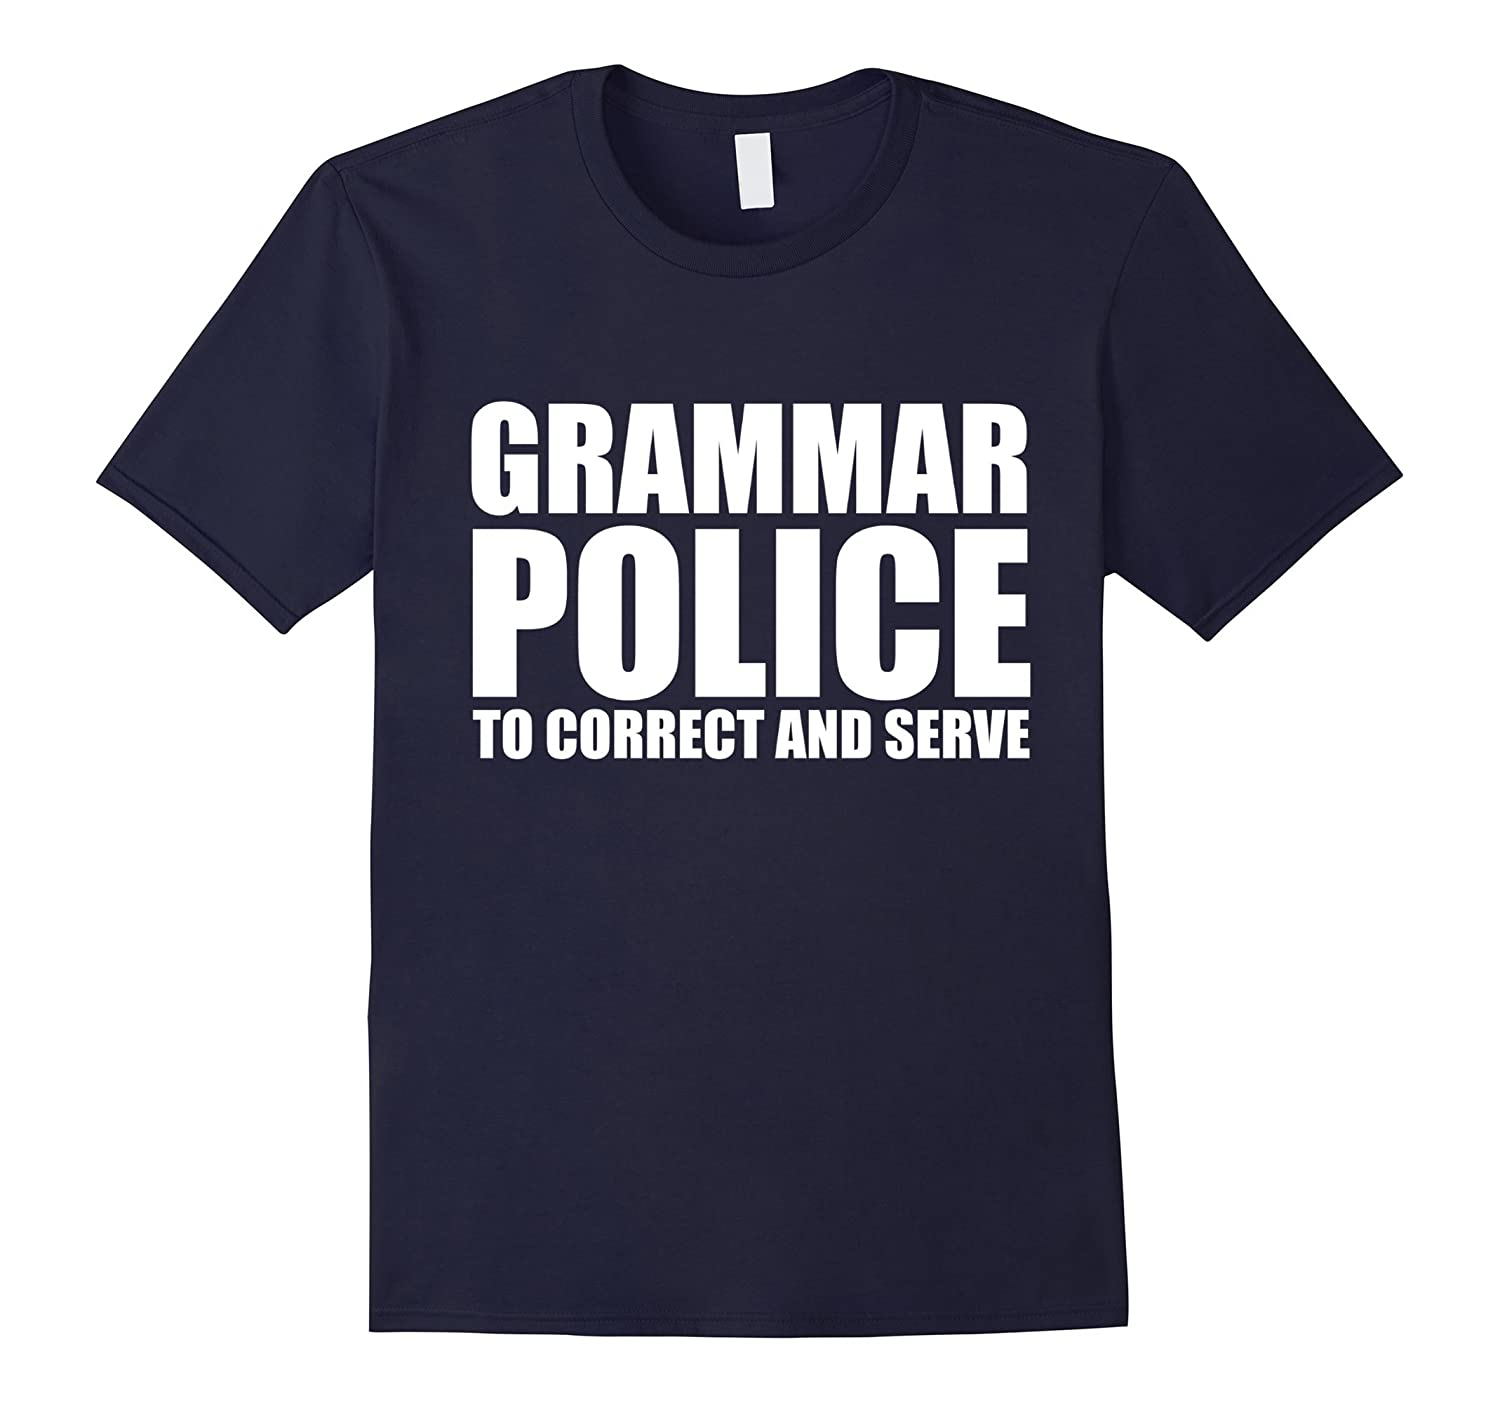 Grammar Police T-Shirt - To Correct and Serve-T-Shirt